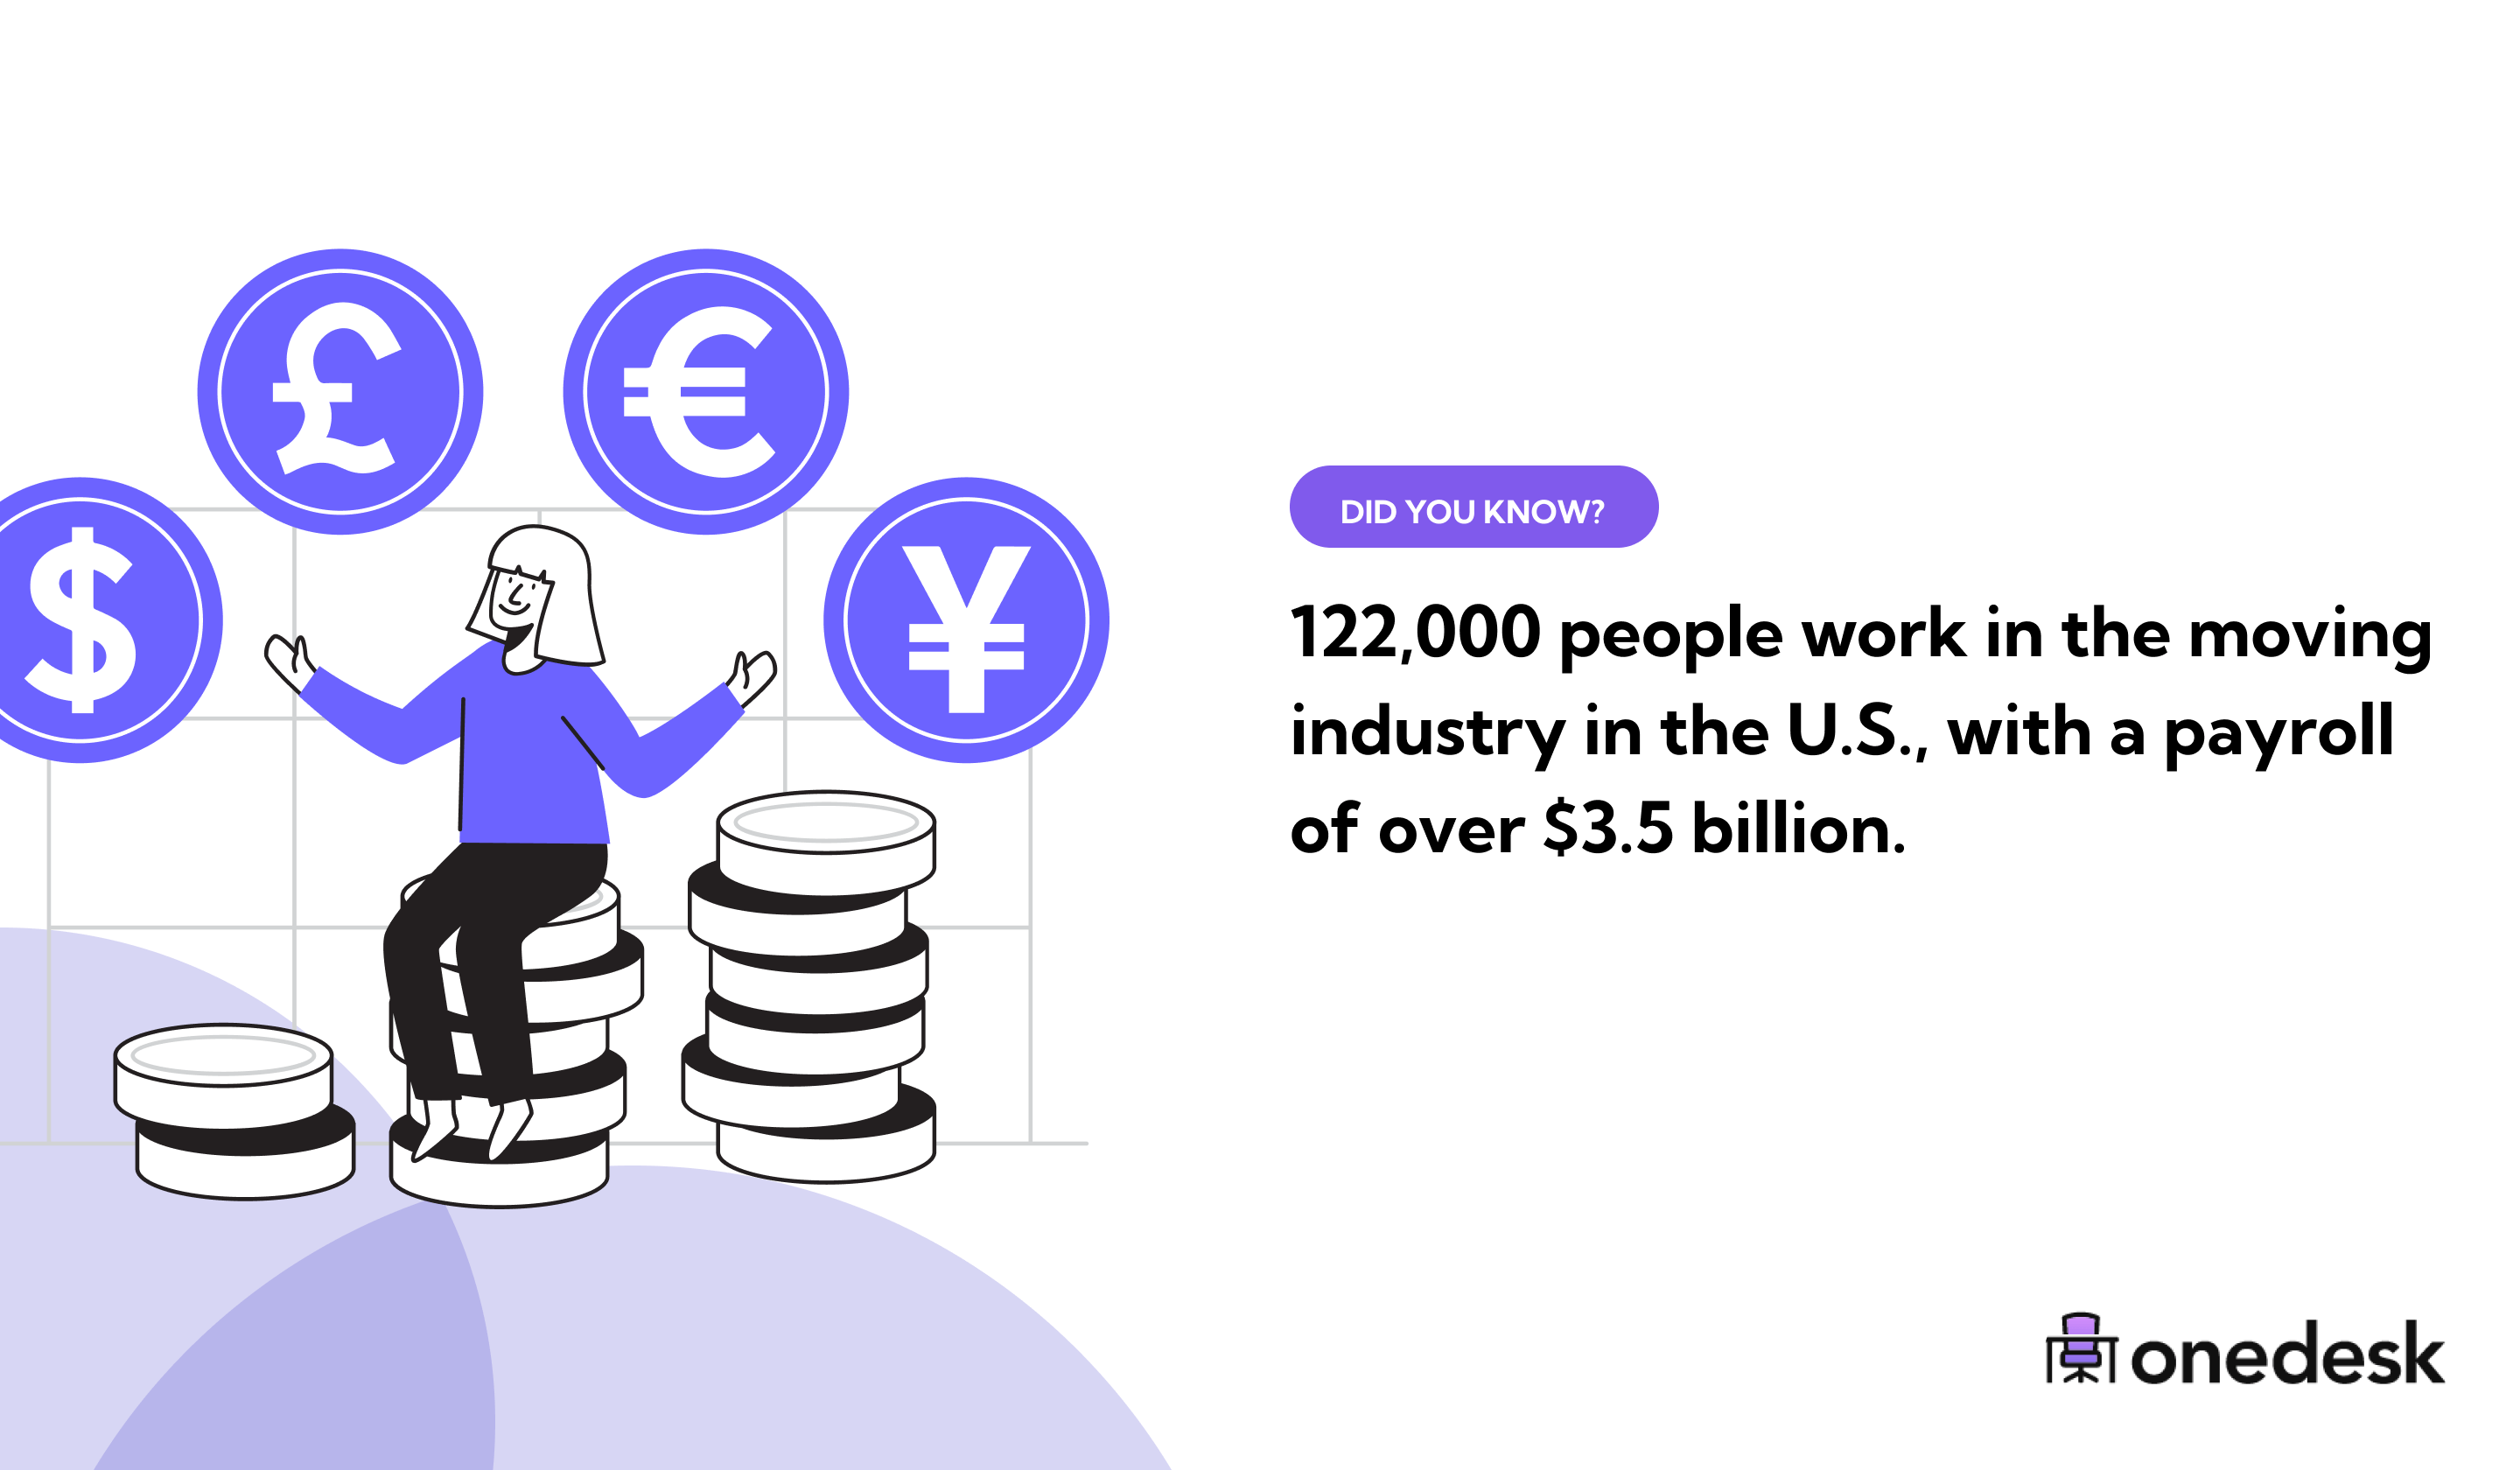 how many people work in the moving industry